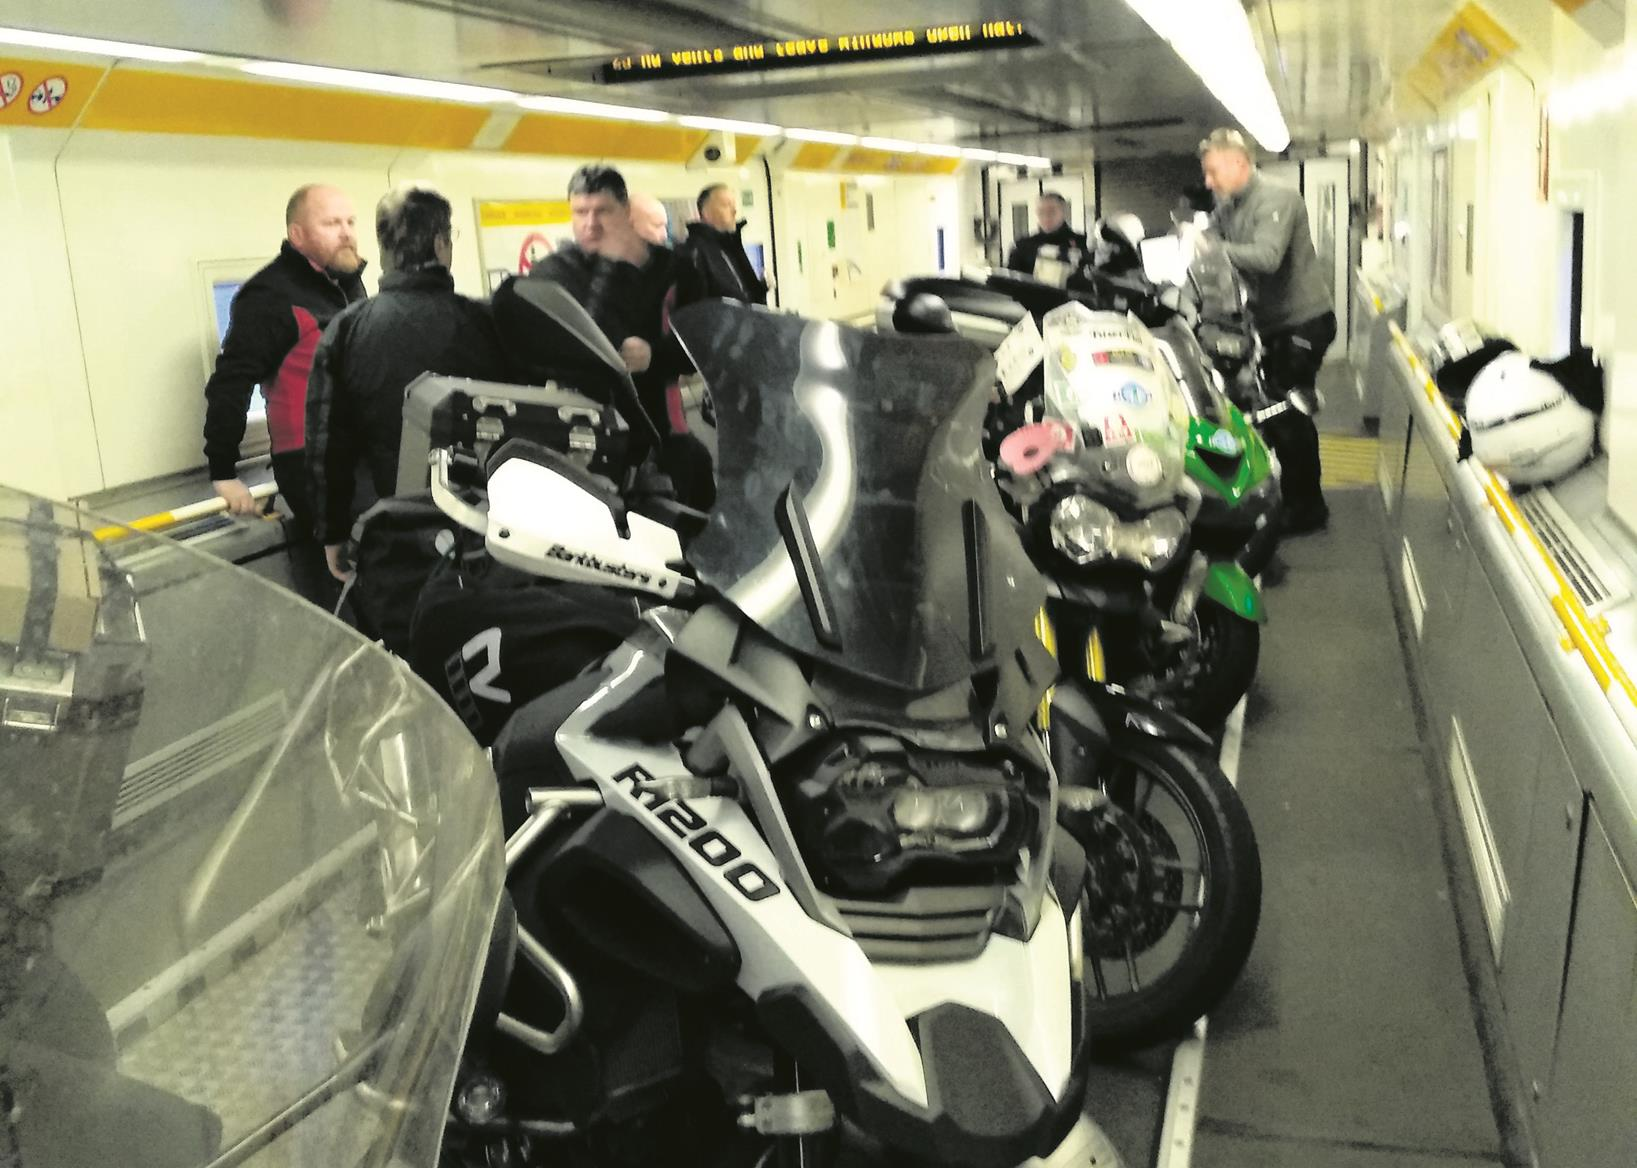 Iron Butt competitors in the Channel Tunnel